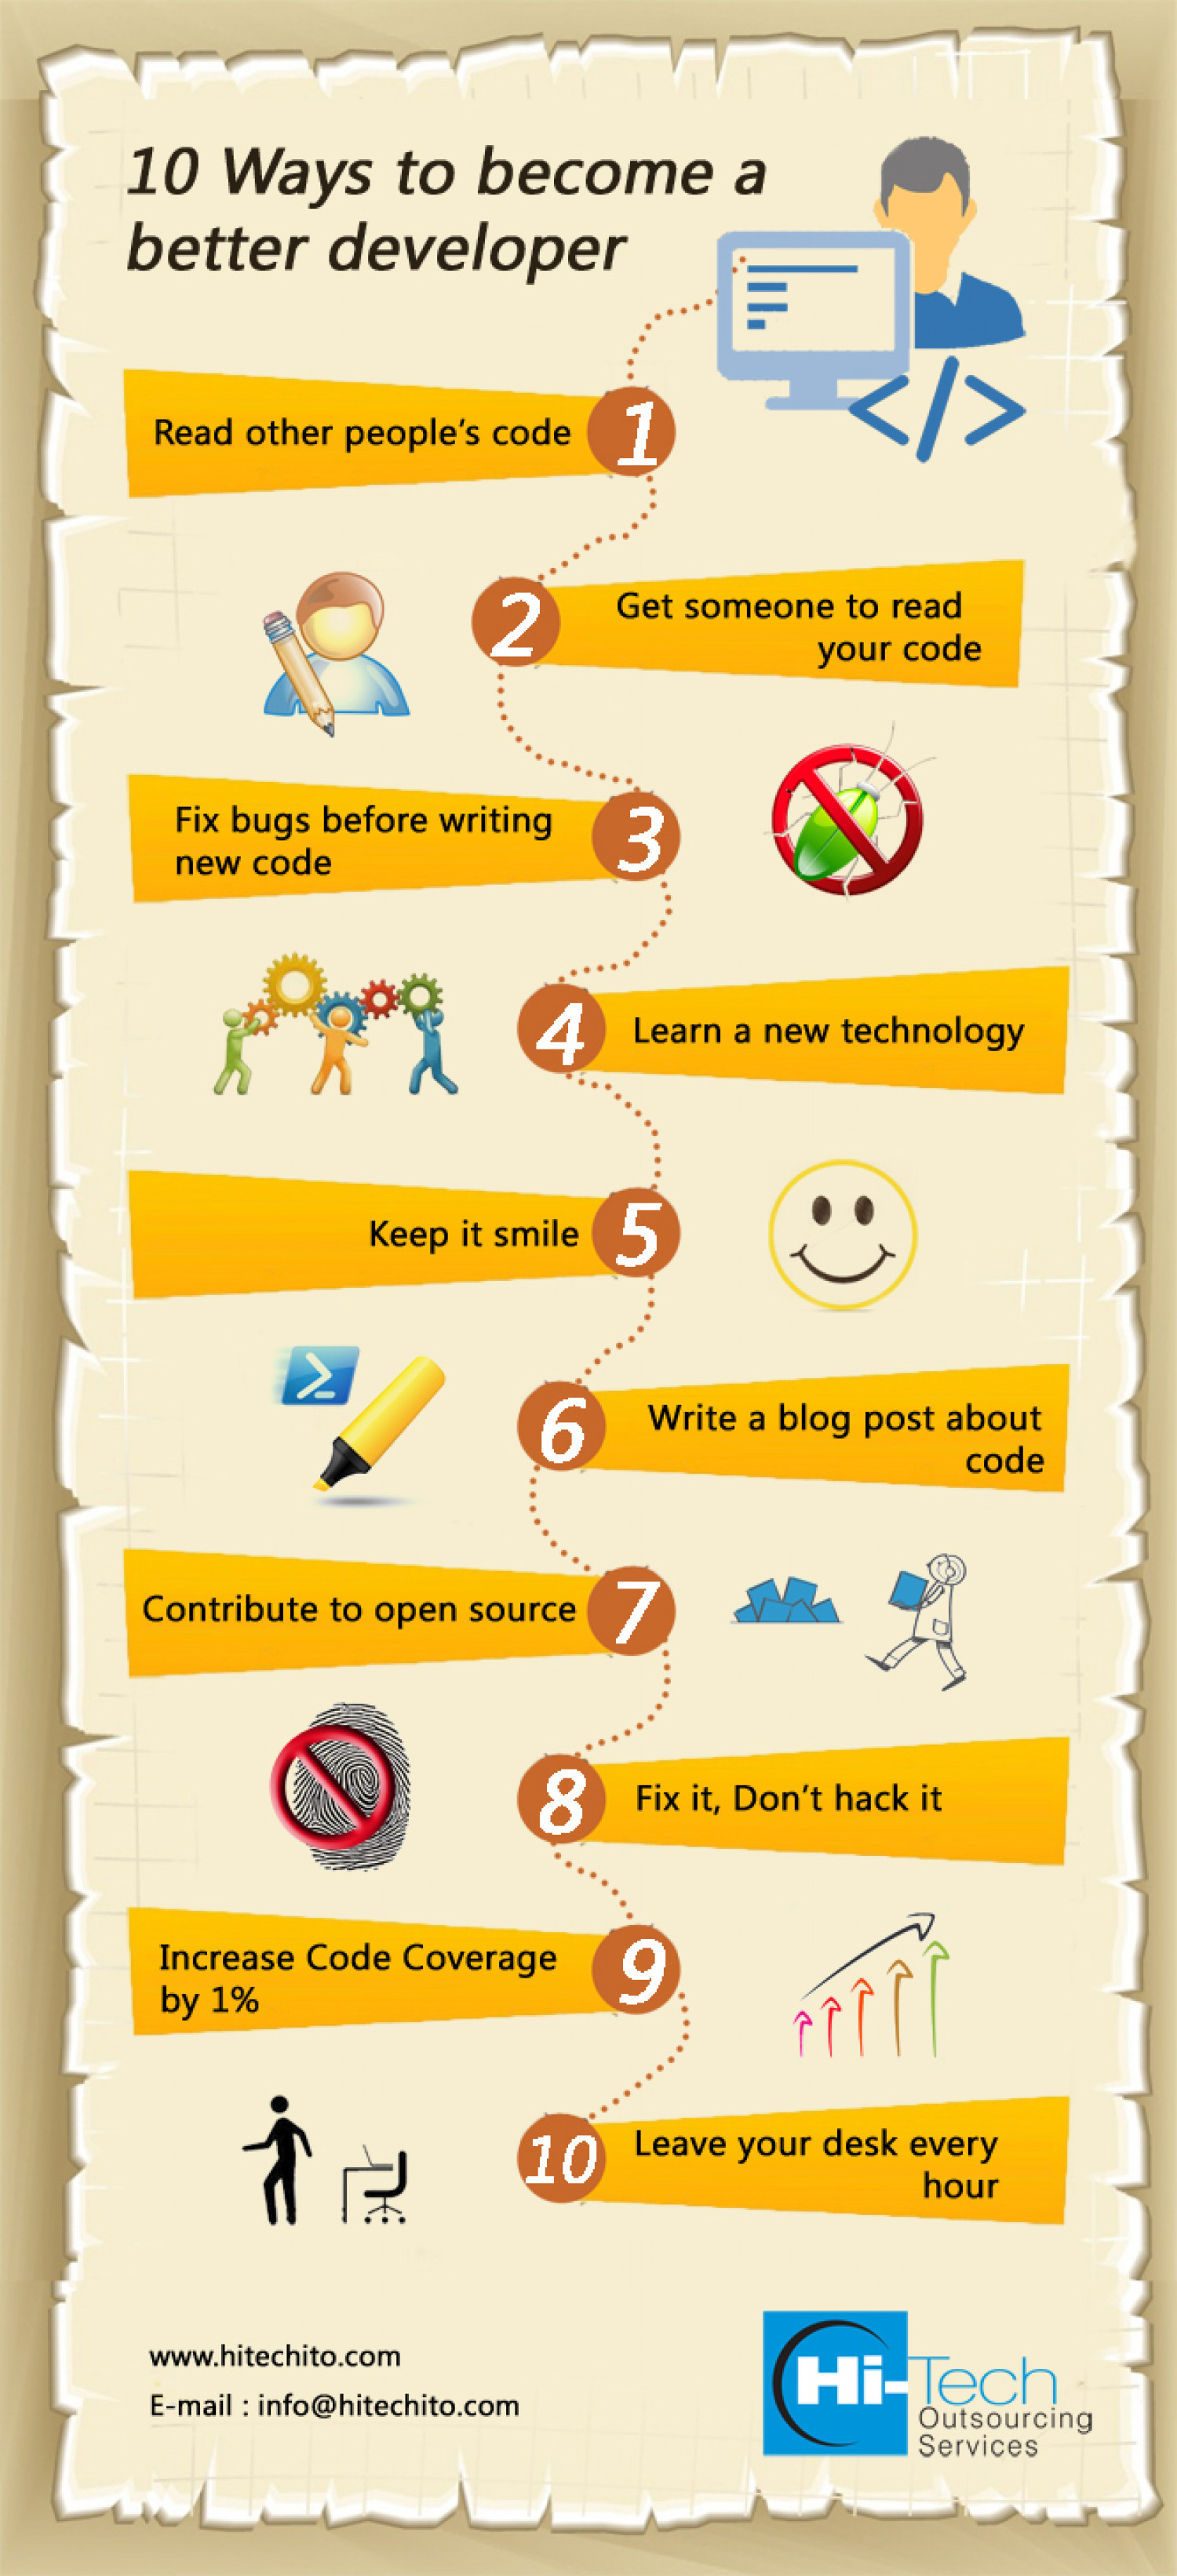 10 Ways to Become A Better Developer Infographic